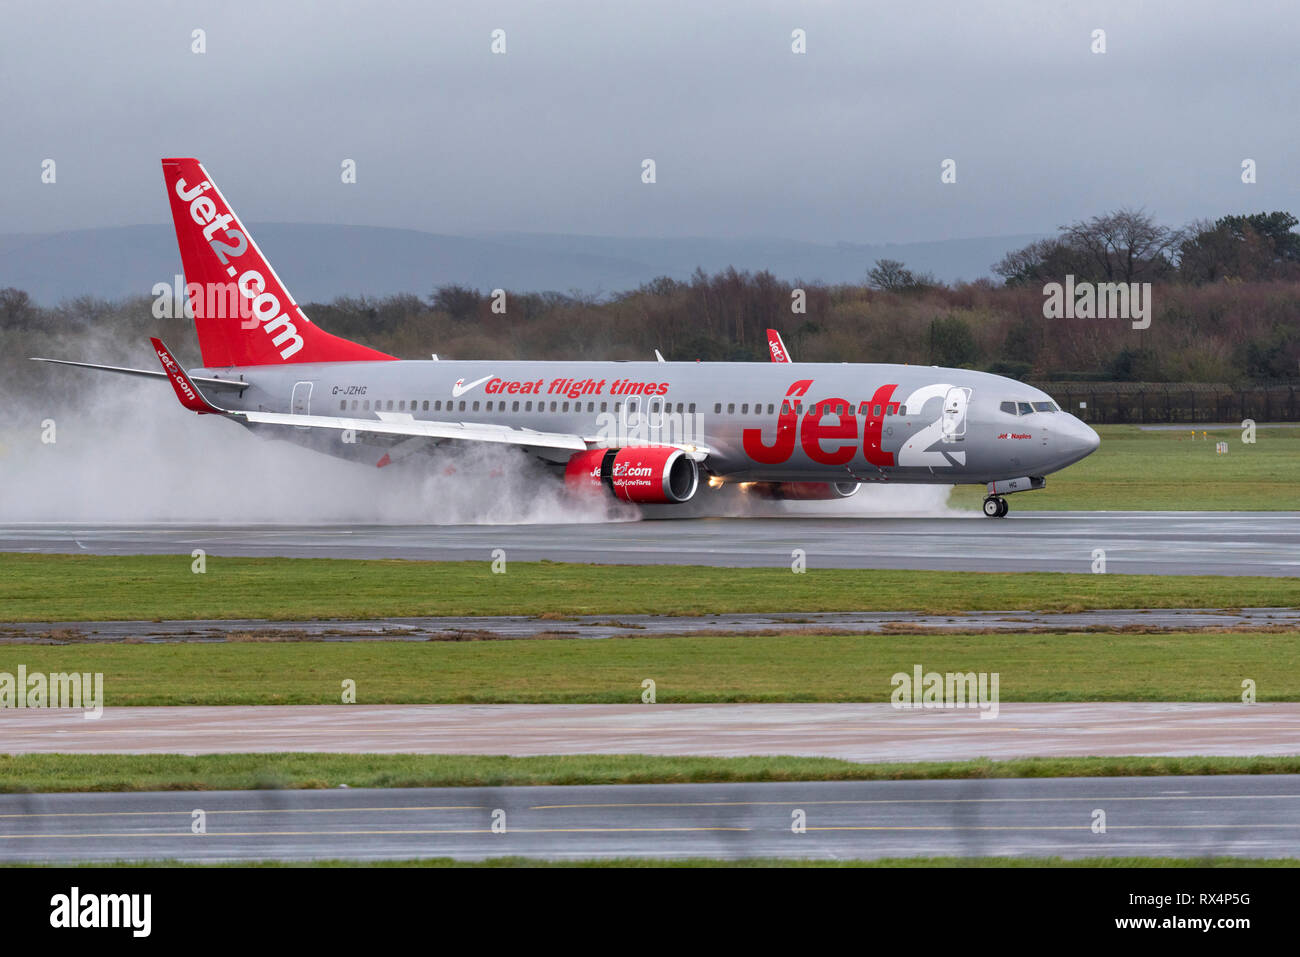 Jets2 airlines Boeing 737. - Stock Image